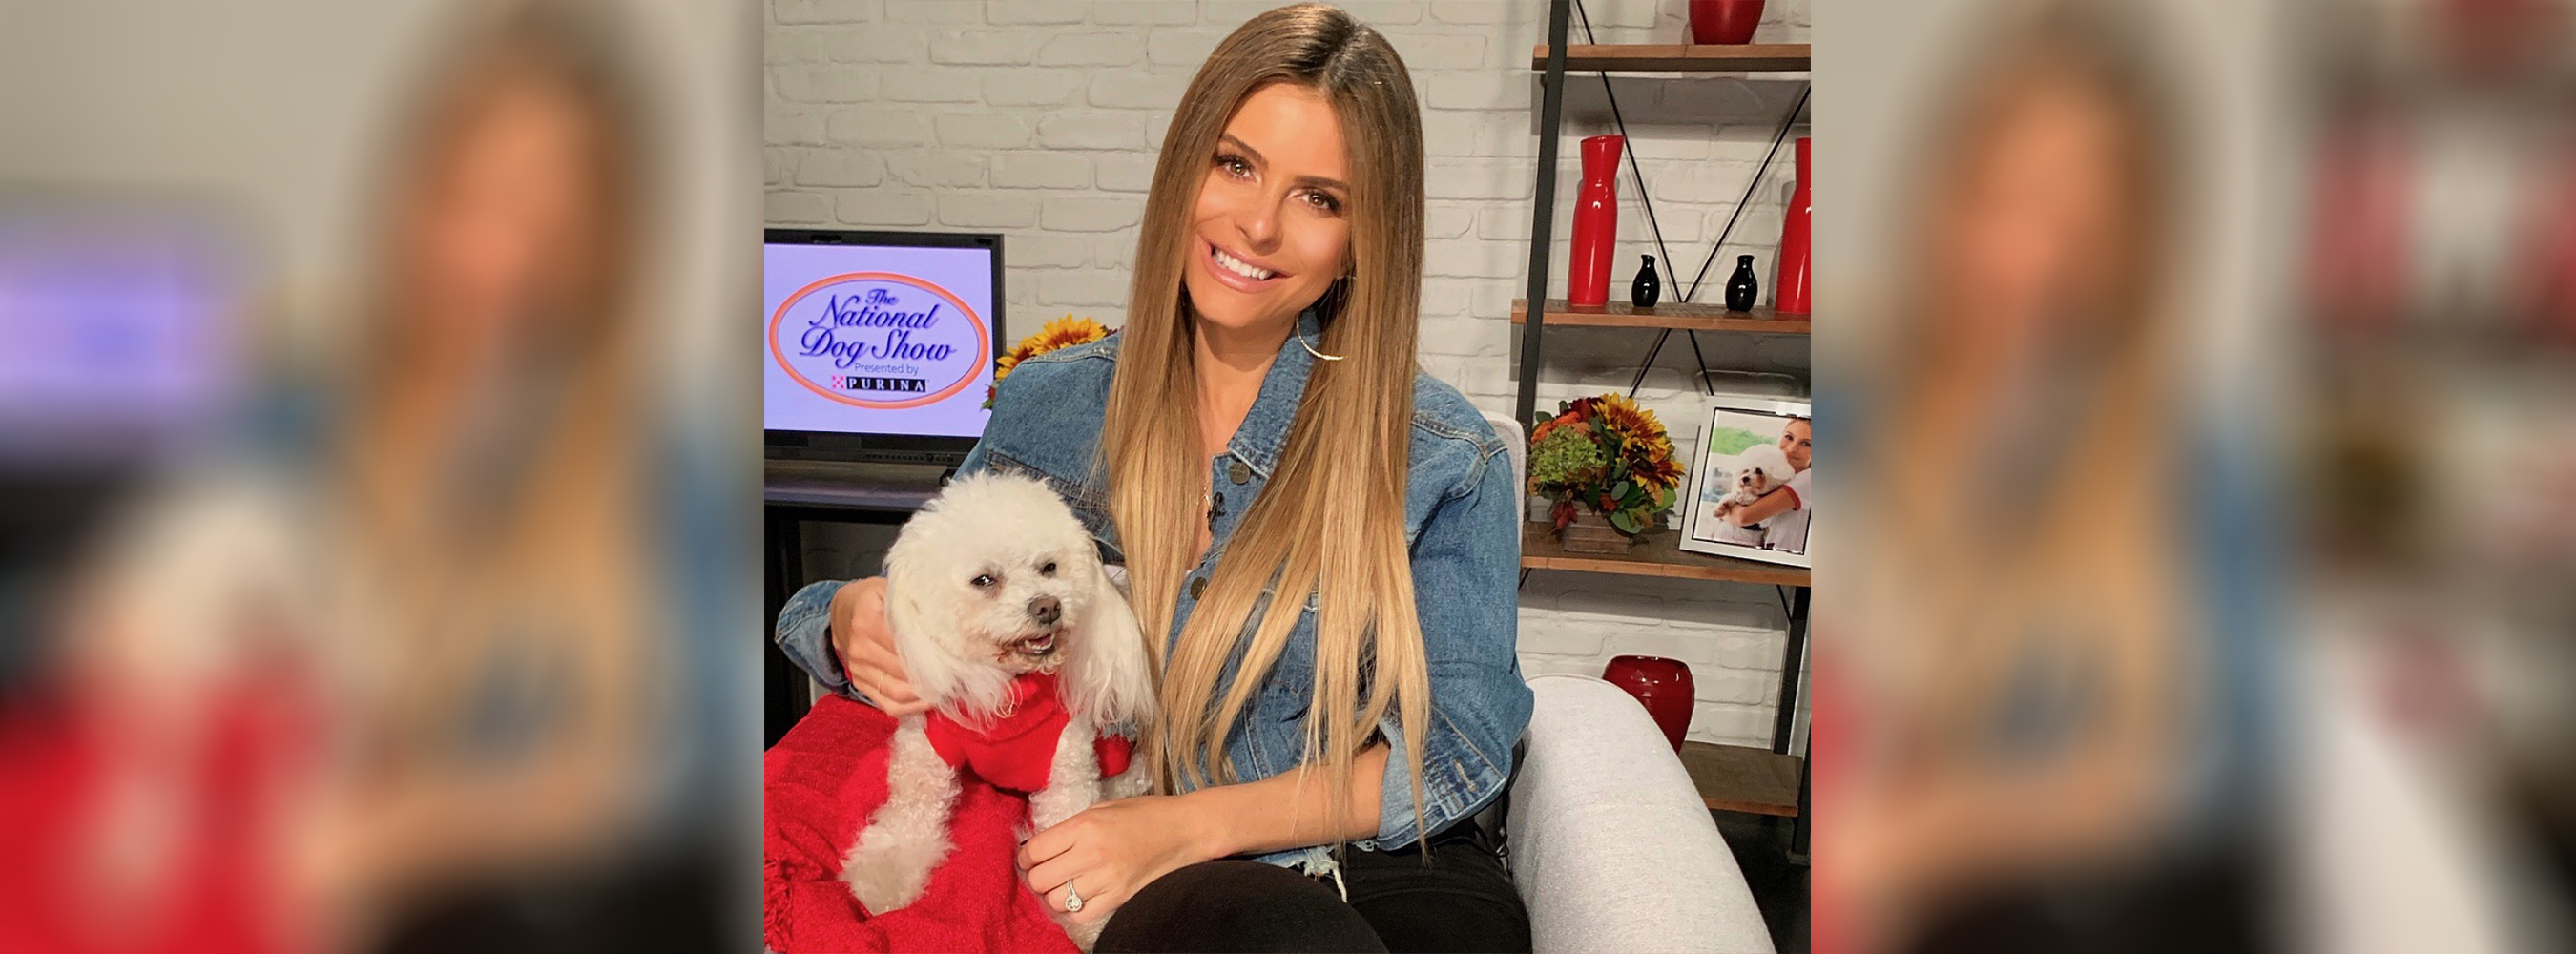 Maria Menounos and her dog Whinnie are teaming up with Purina to thank our pets through this year's #DogThanking movement in celebration of Thanksgiving and the National Dog Show Presented by Purina.